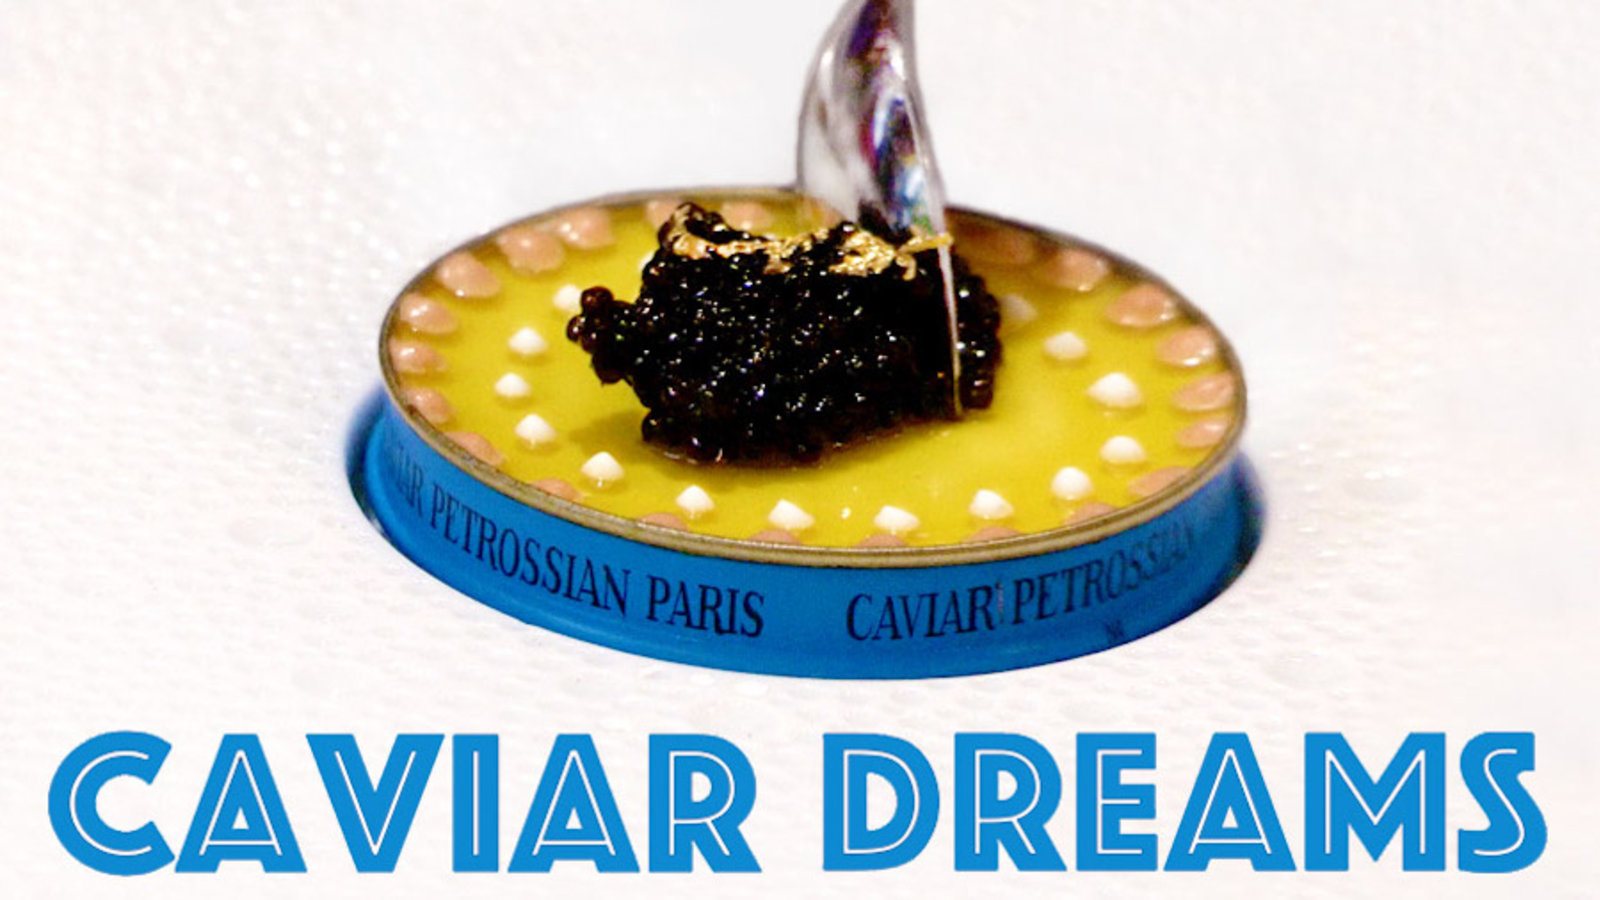 Caviar Dreams - How Caviar Became a Delicacy